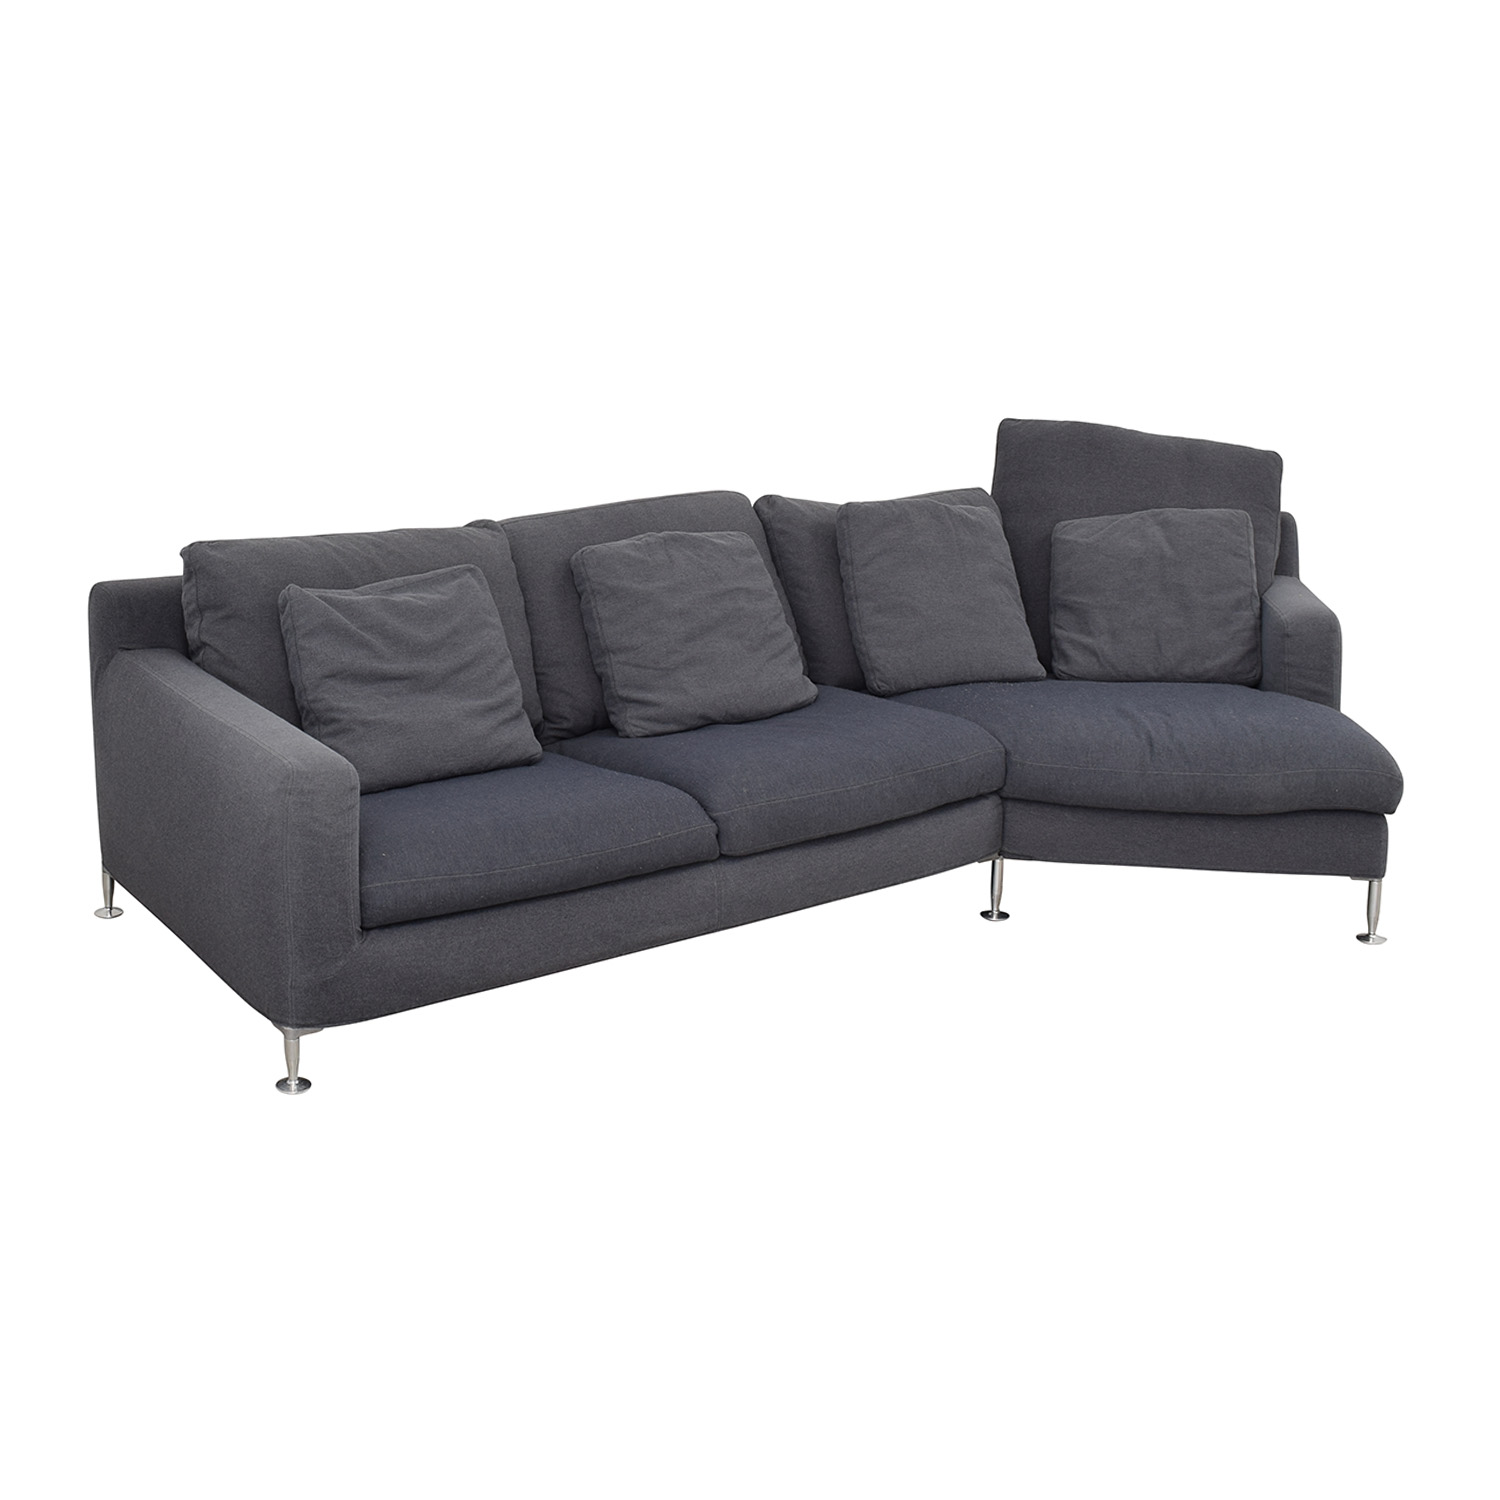 B&B Italia B&B Italia Harry Sectional Sofas